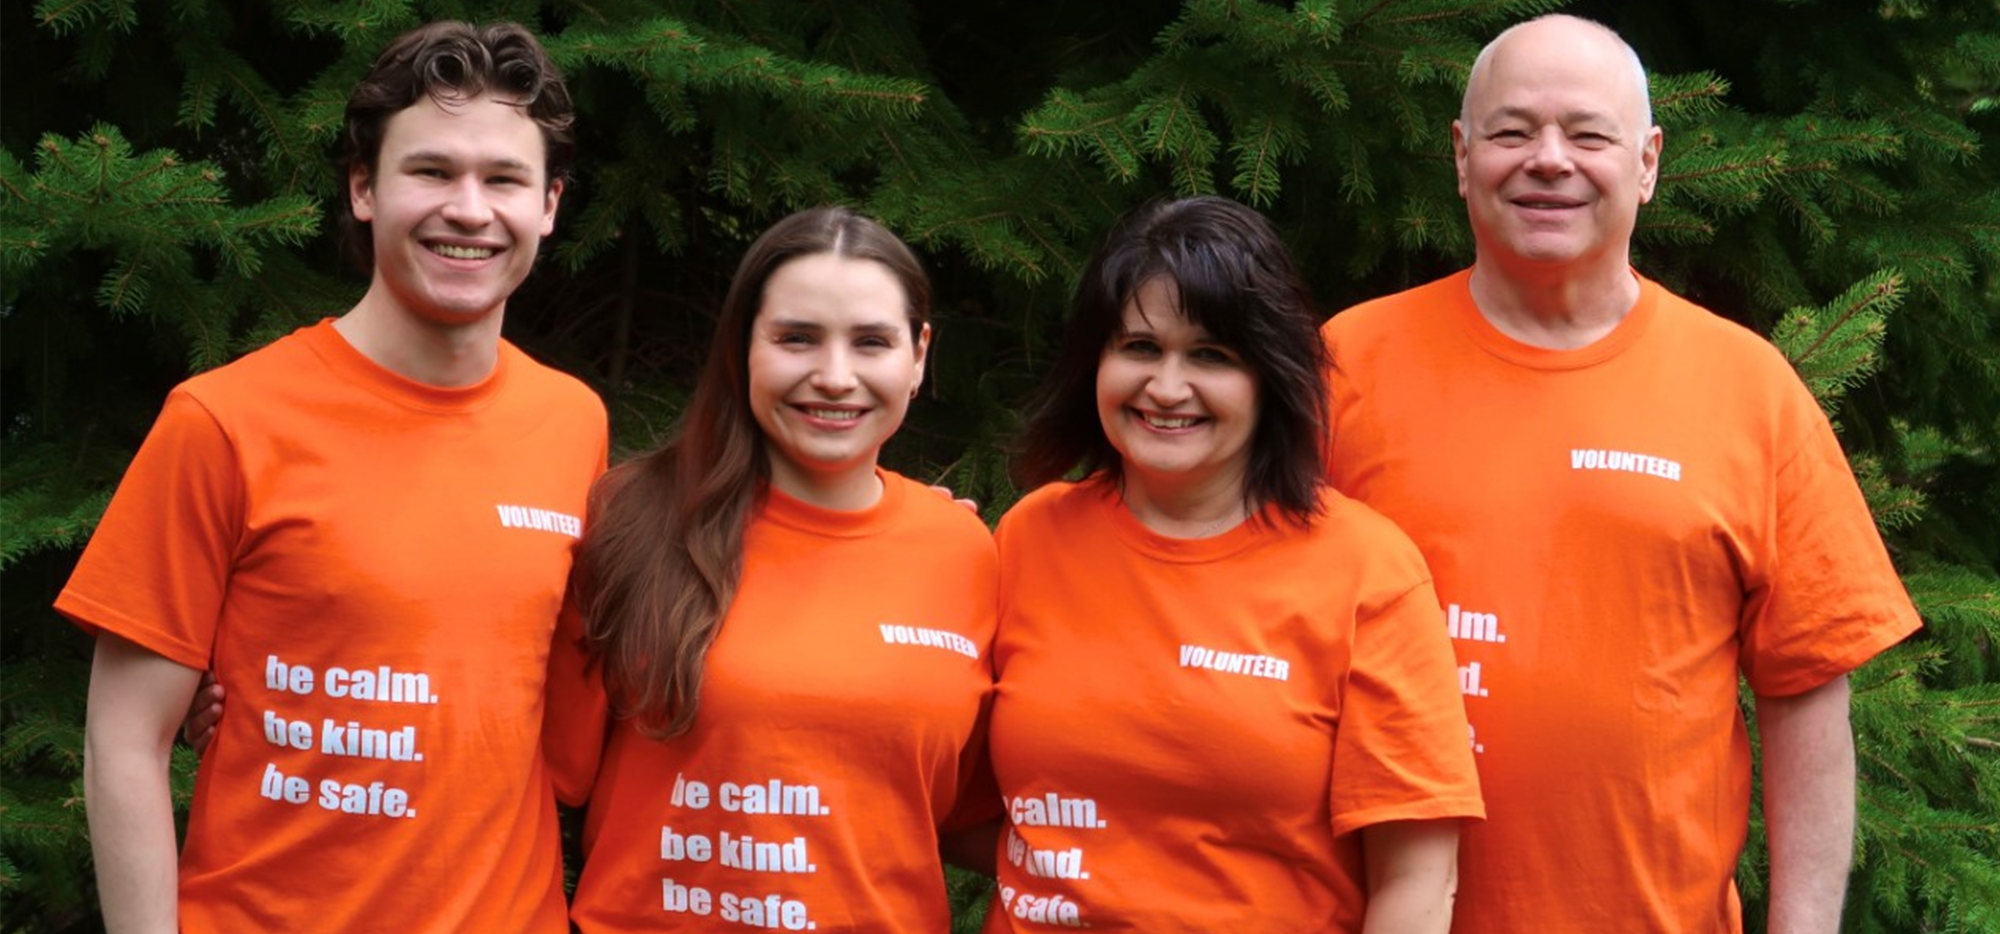 The Tennant family (four people) wearing orange shirts in front of some trees